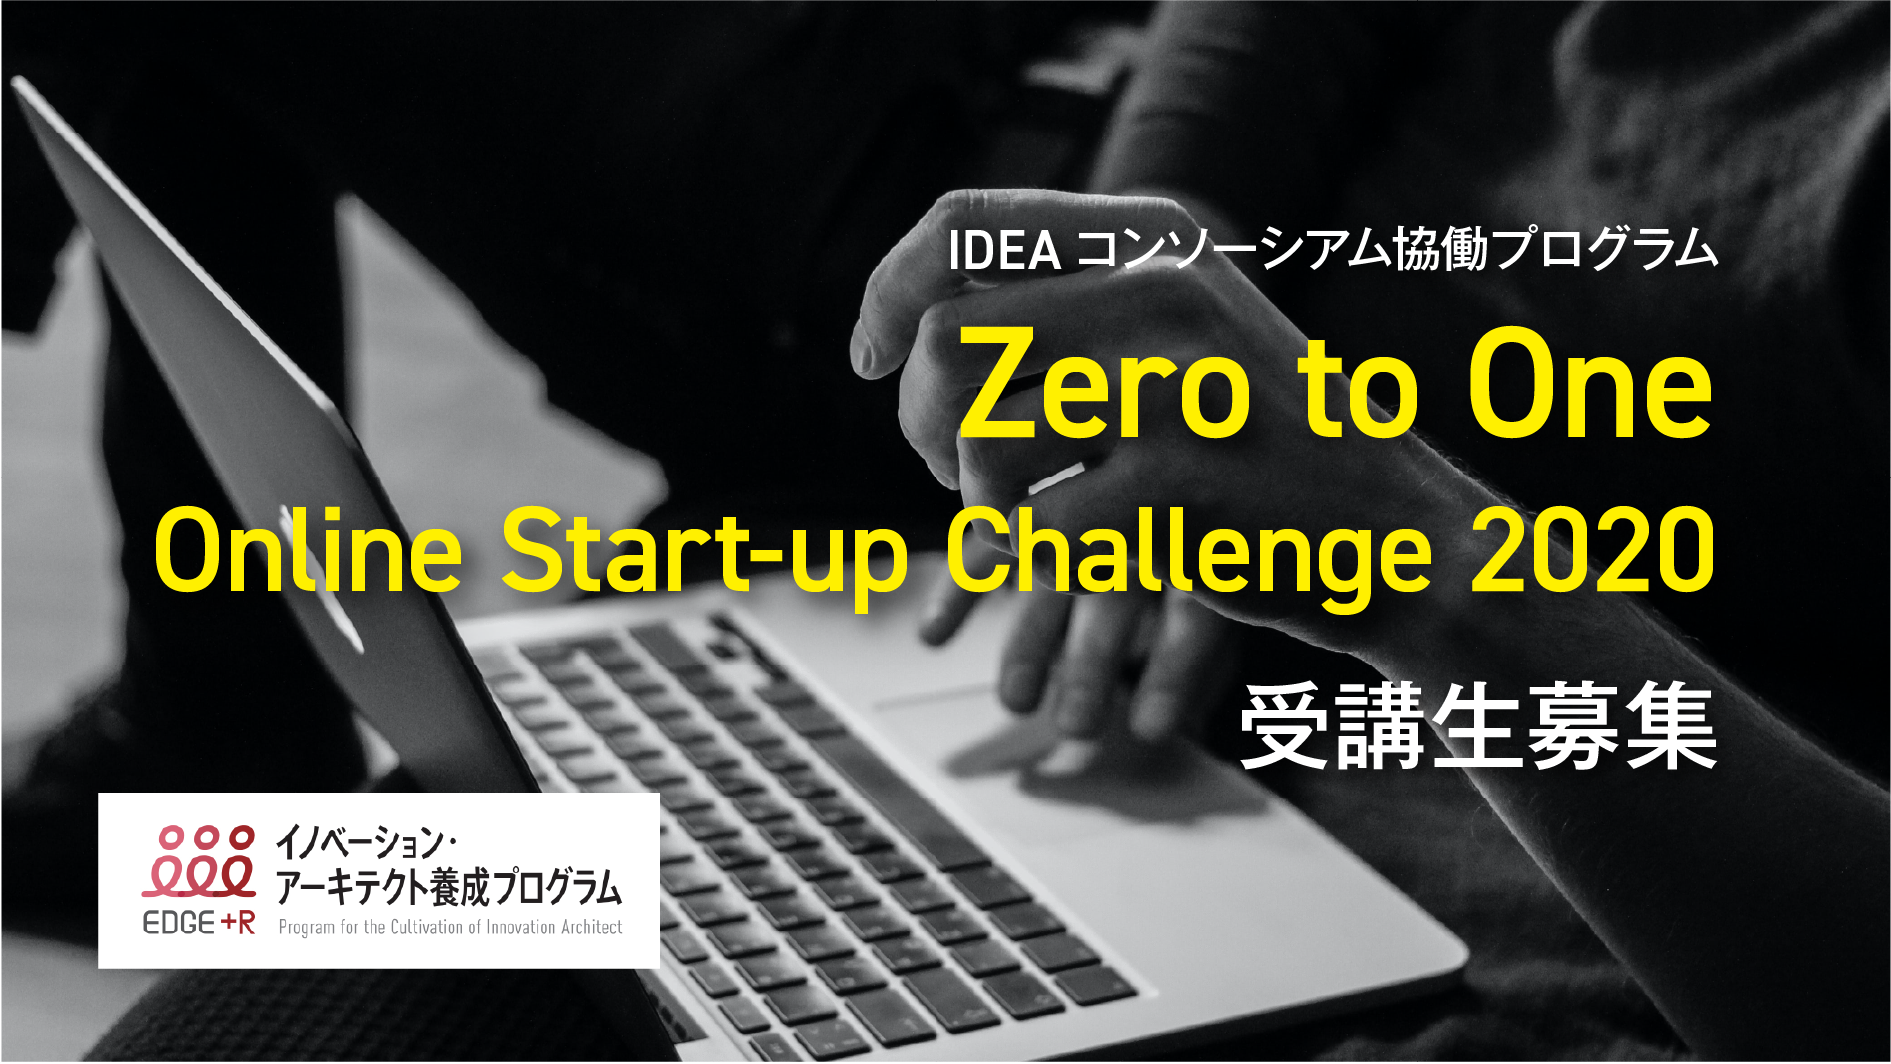 立命館大学EDGE+R「Zero to One Online Start-up Challenge 2020」参加学生募集!